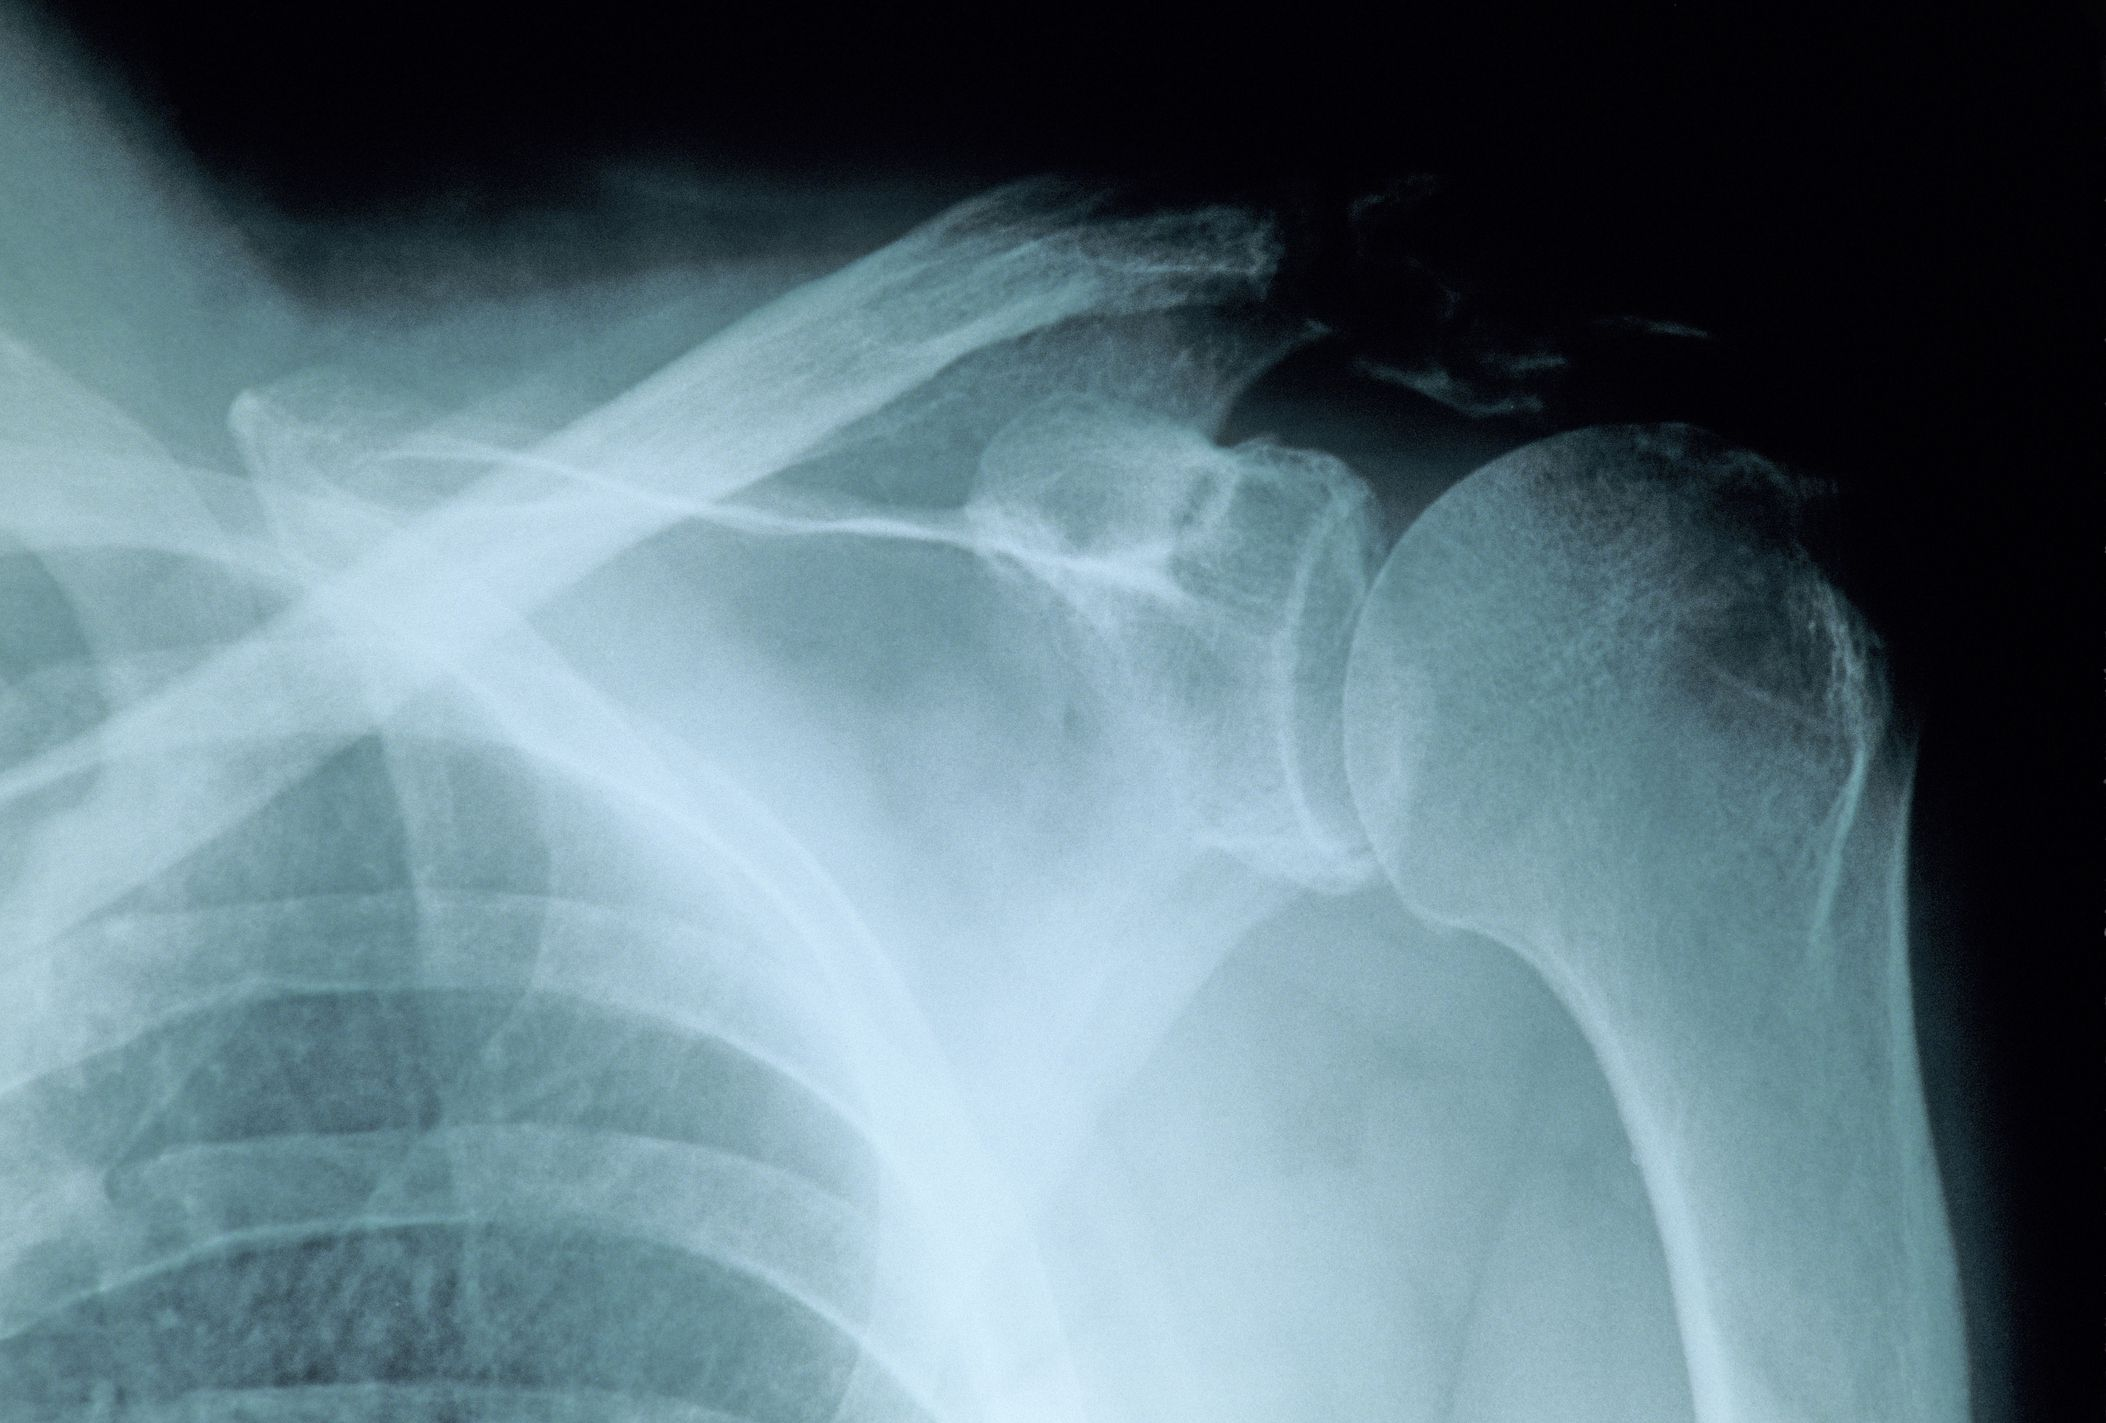 Proximal Humerus Bone Fractures Overview